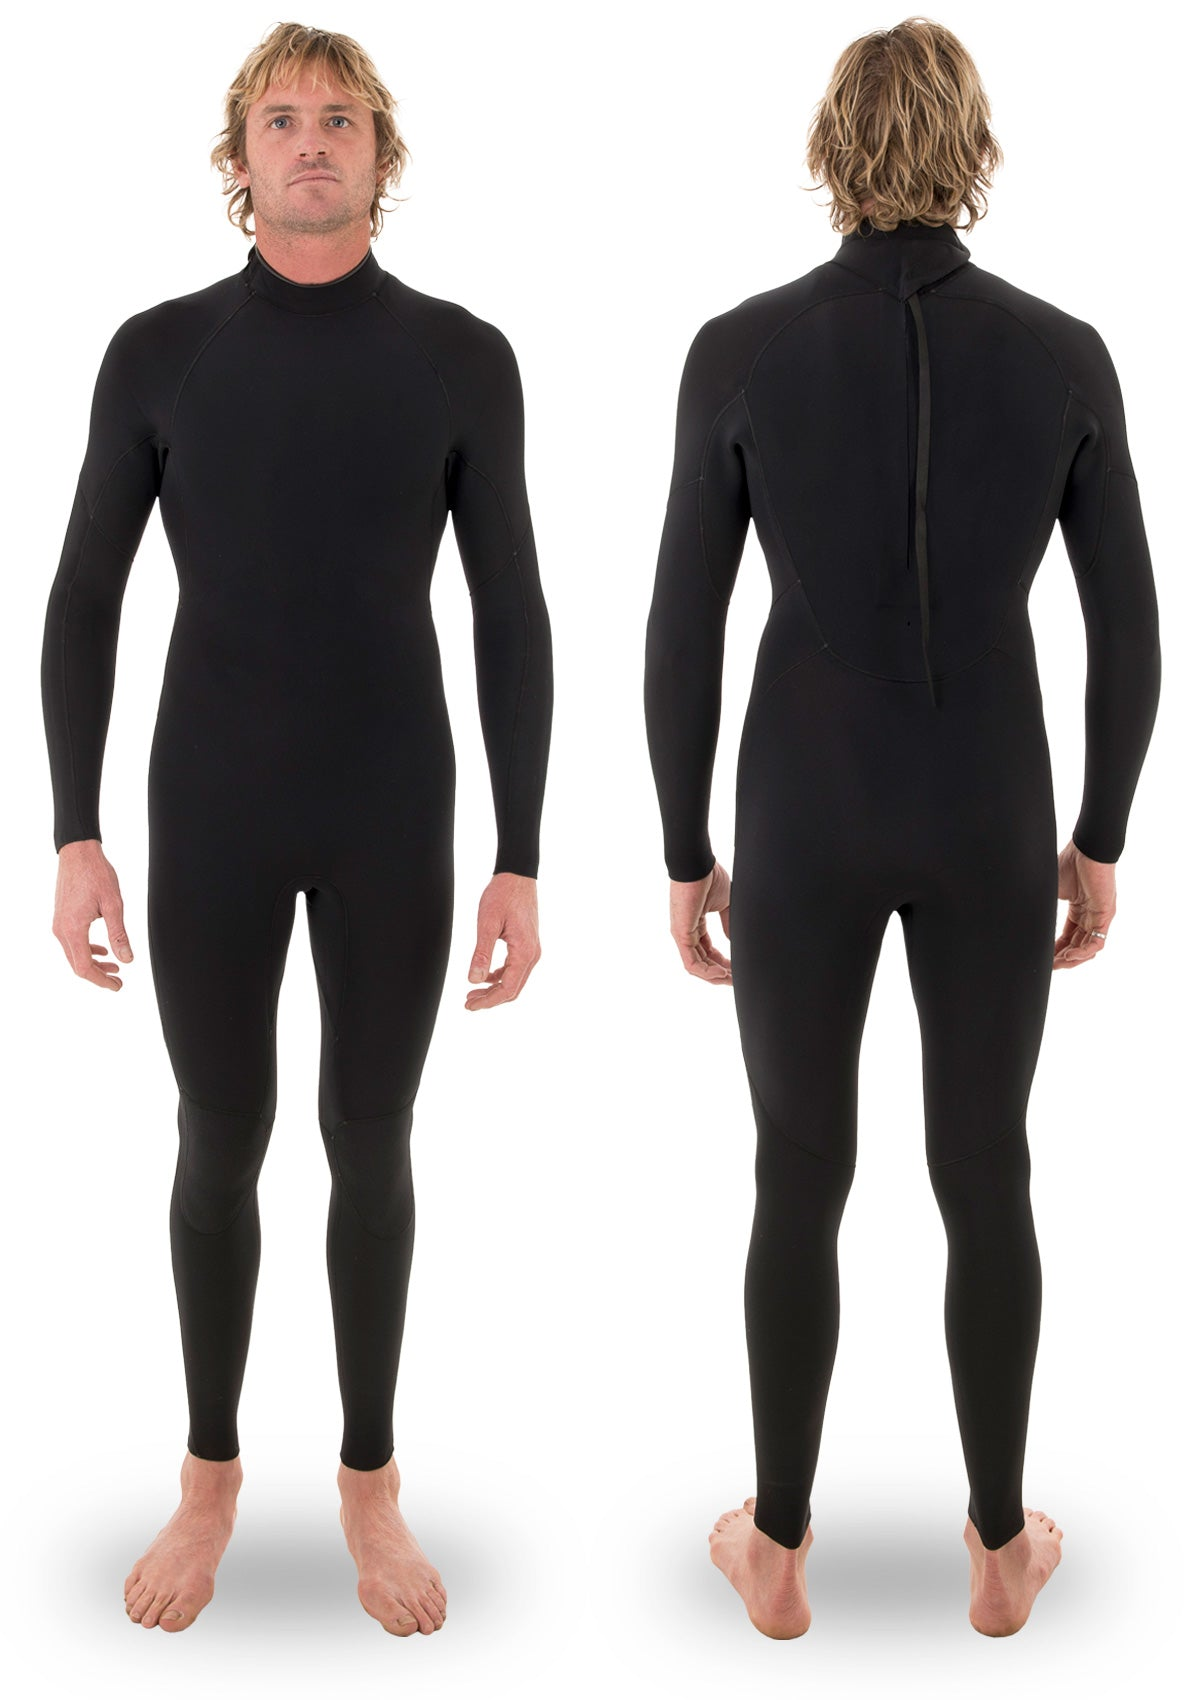 needessentials 4/3 back zip thermal wetsuit laurie towner surfing winter black non branded